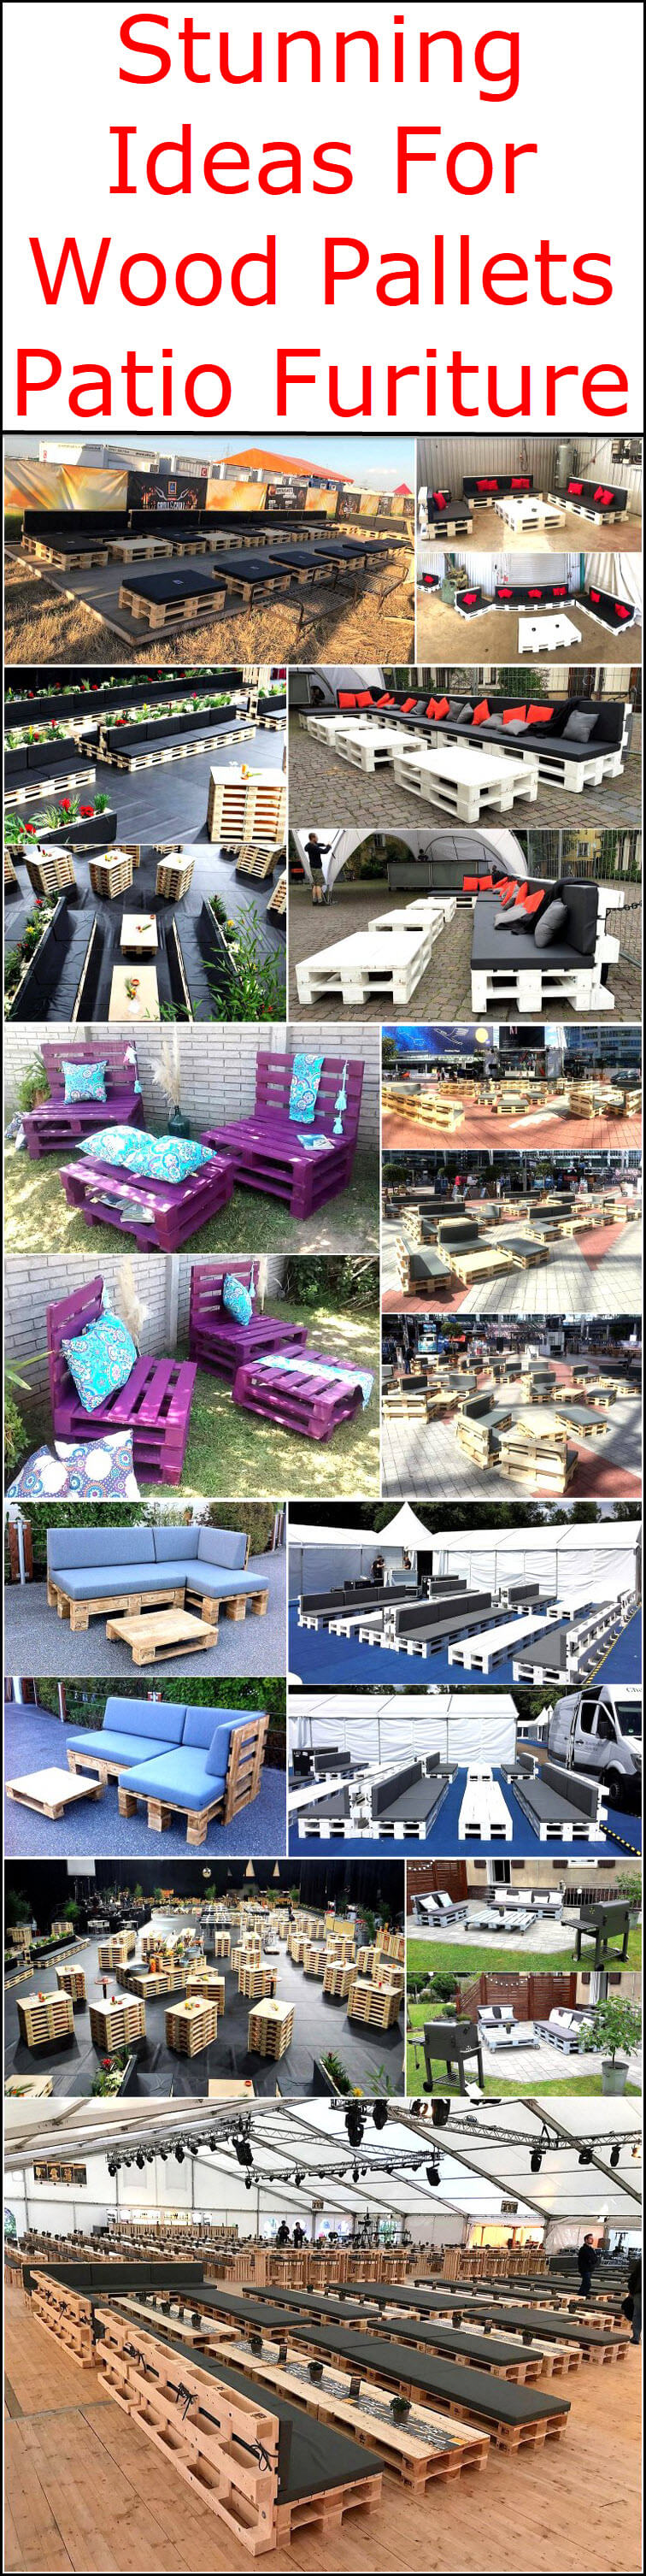 Stunning Ideas For Wood Pallets Patio Furiture